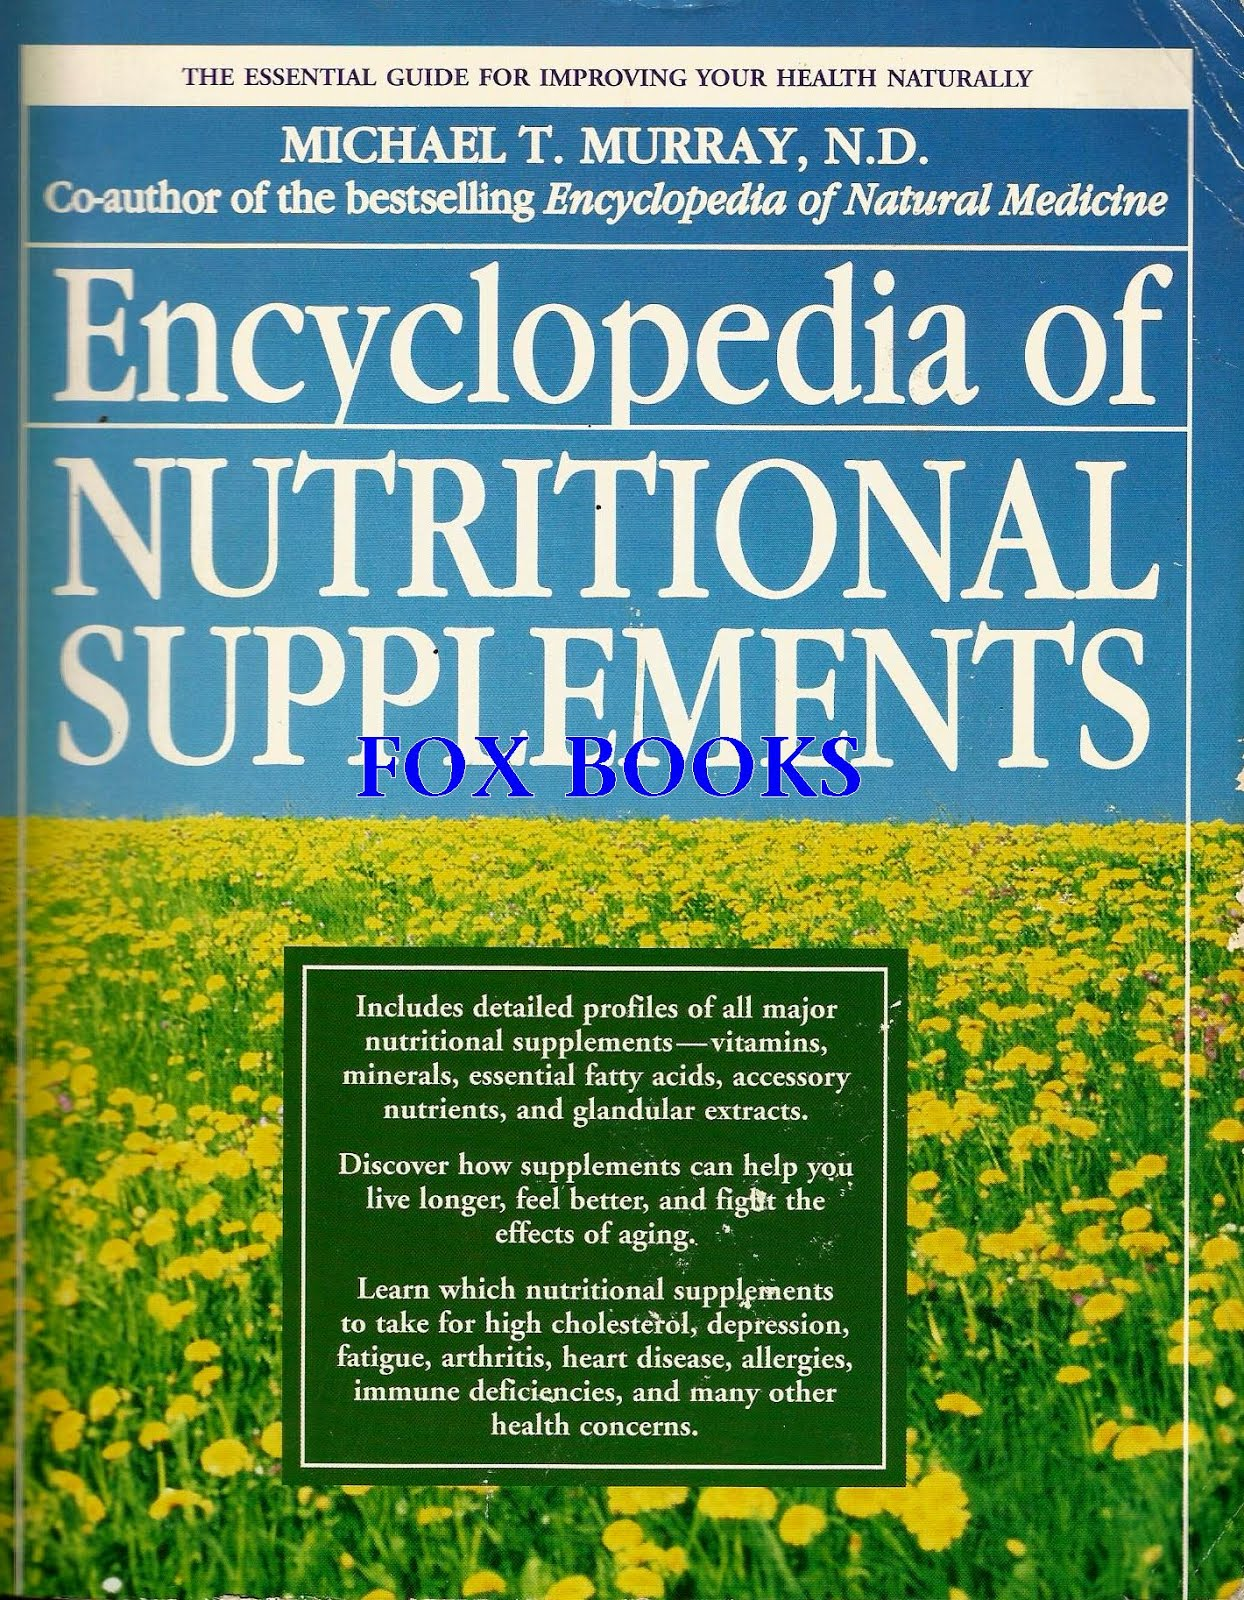 ENCYCLOPEDIA OF NUTRITIONAL SUPPLEMENTS BY MURRAY